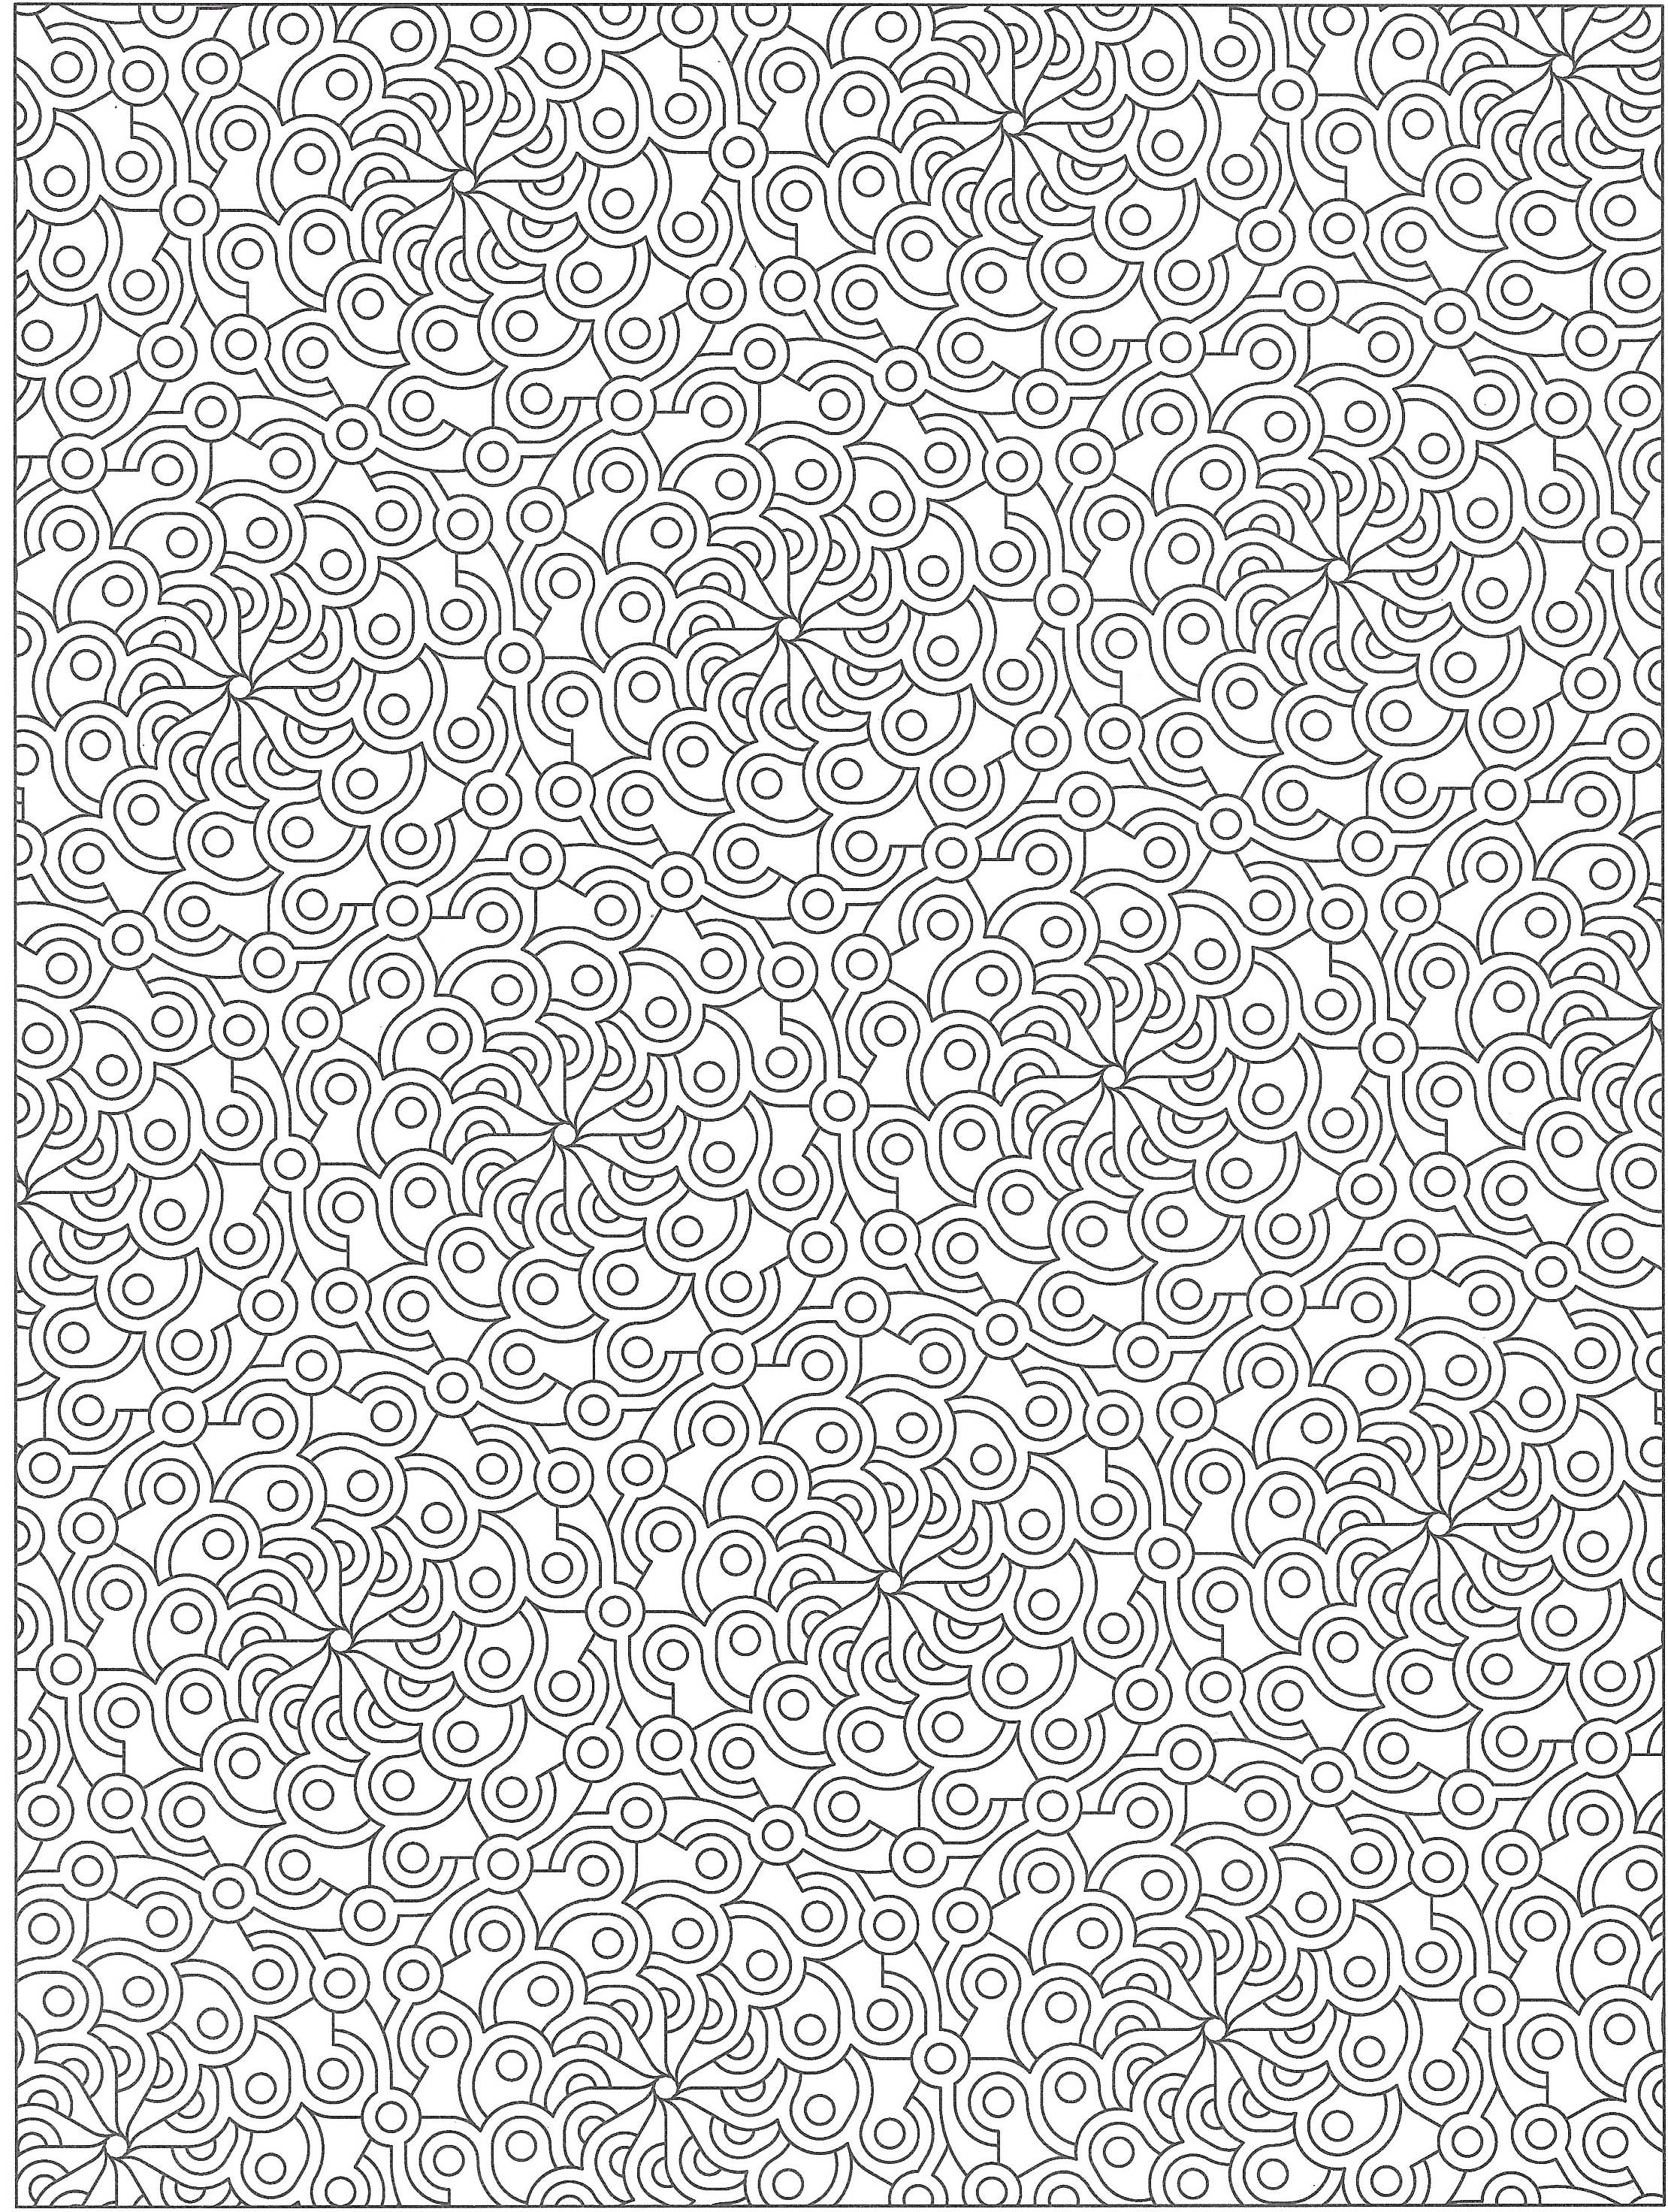 tessellation coloring creative haven tessellations coloring page geometric tessellation coloring